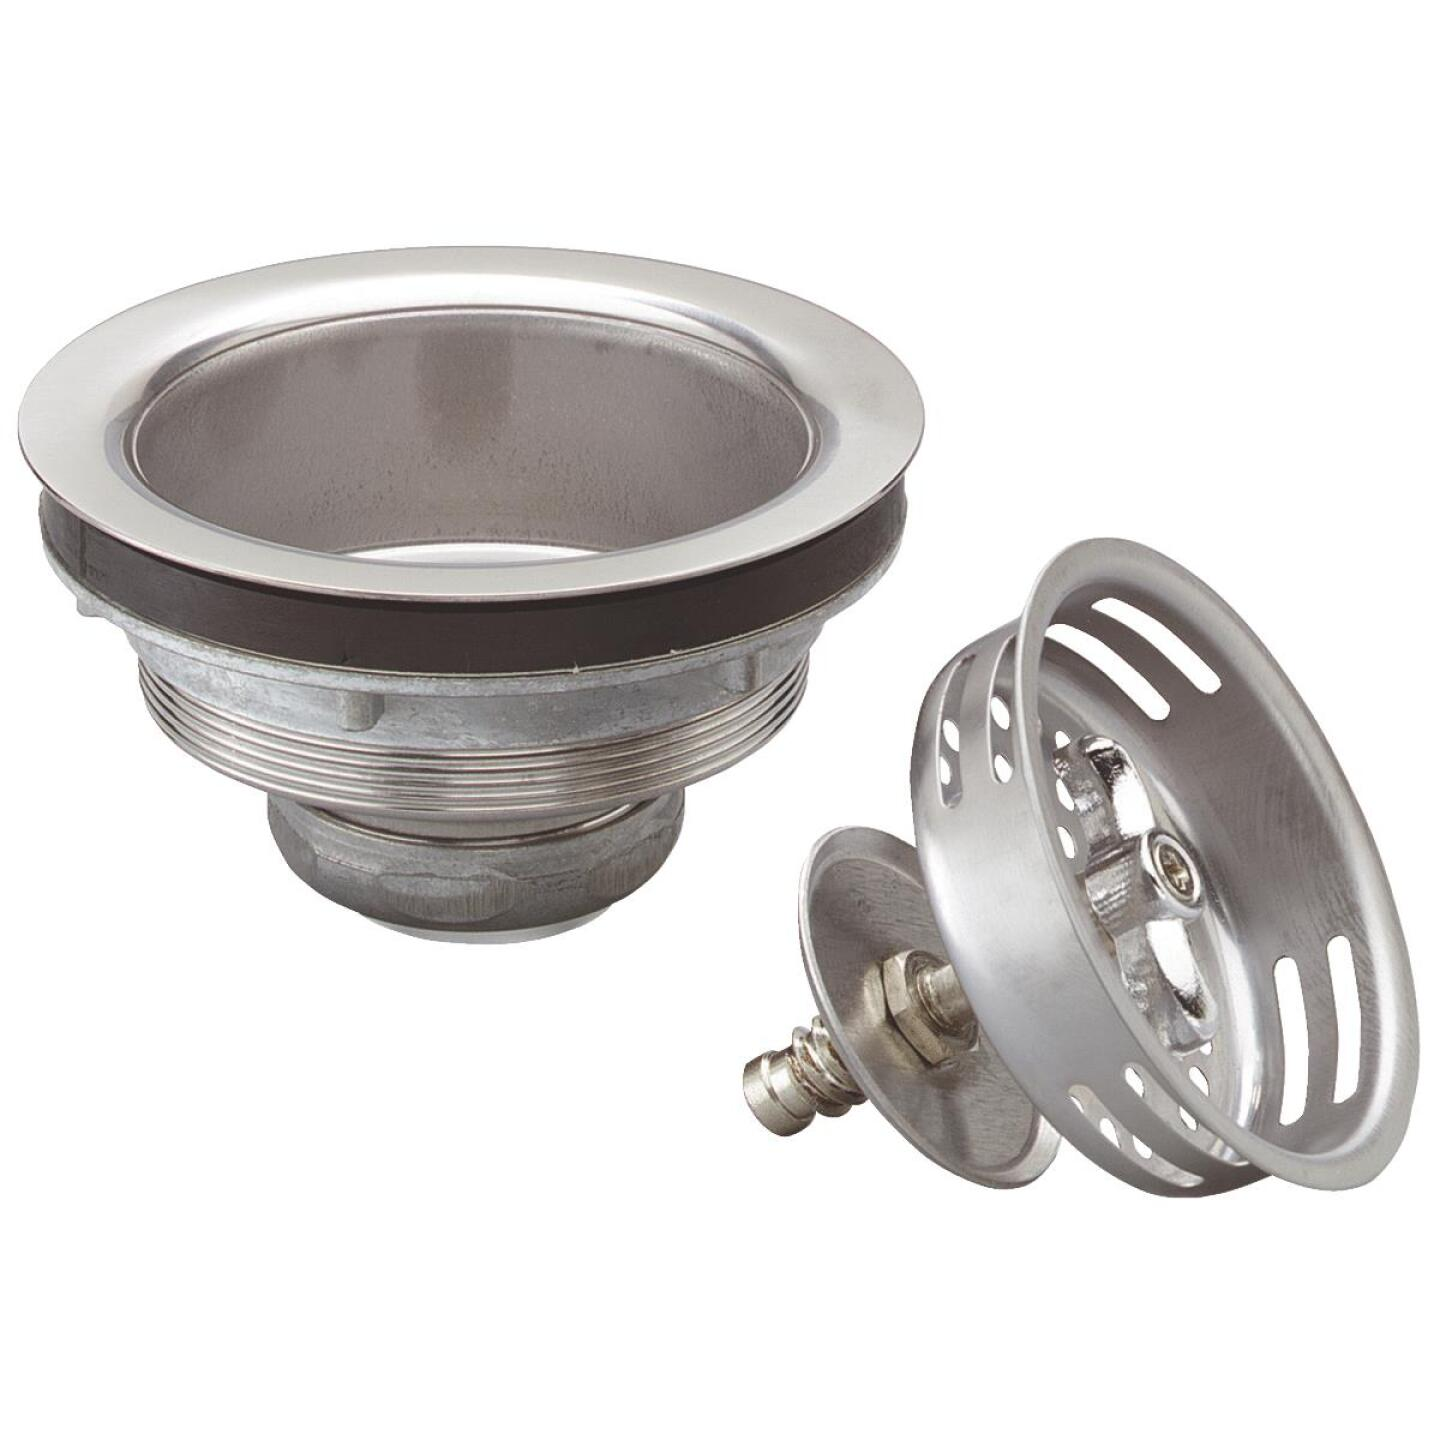 Do it Stainless Steel Turn to Seal Basket Strainer Assembly Image 1